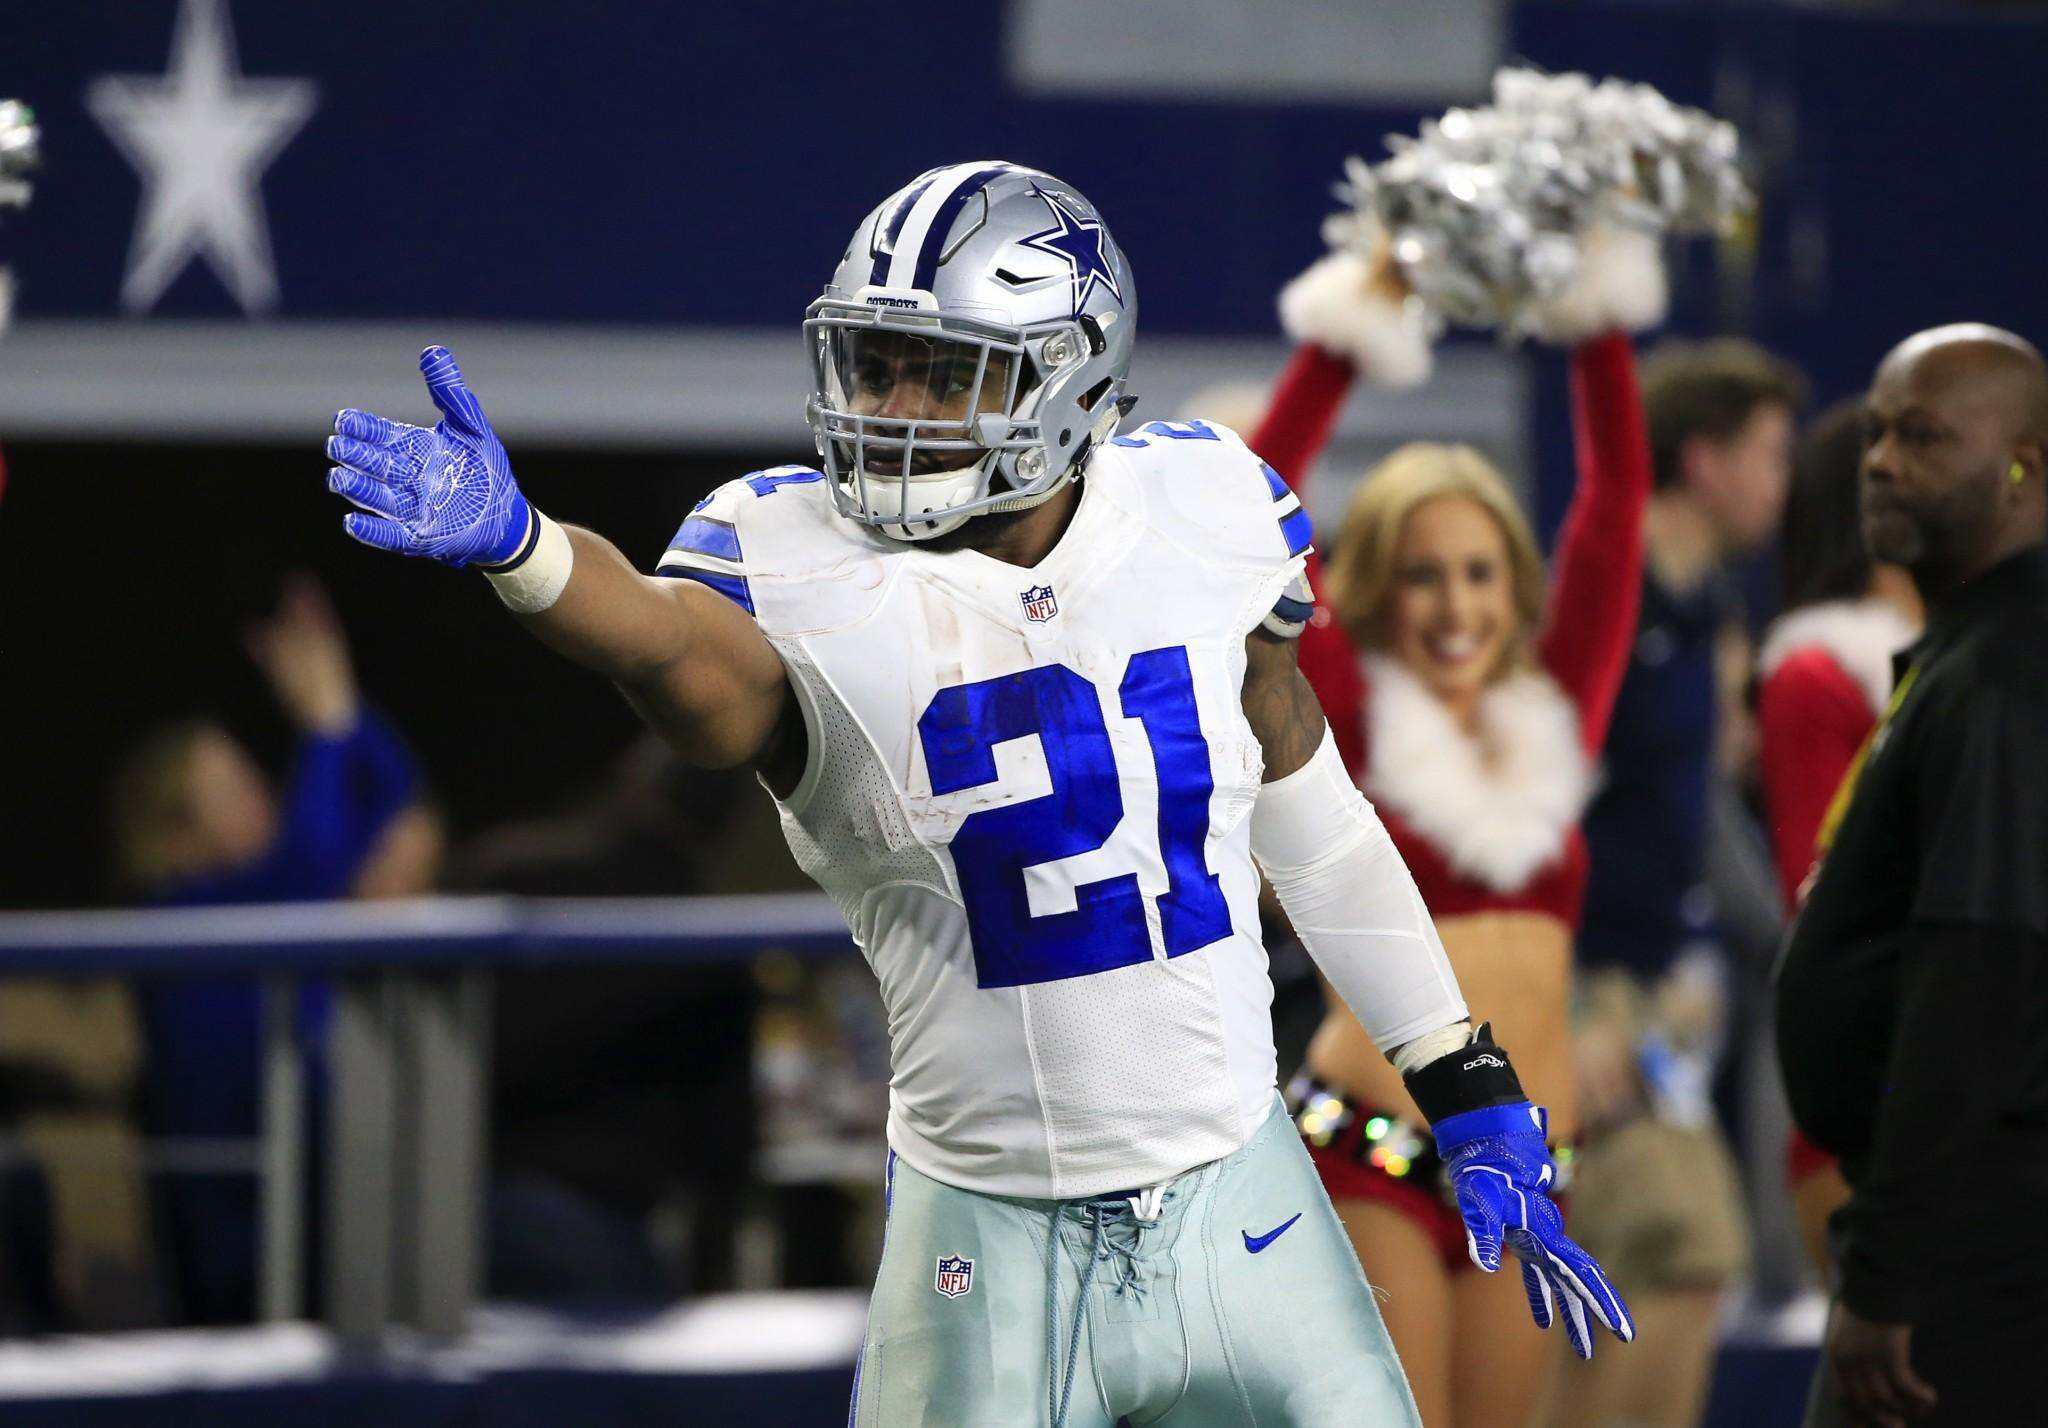 Dallas Cowboys RB Ezekiel Elliott may play all season